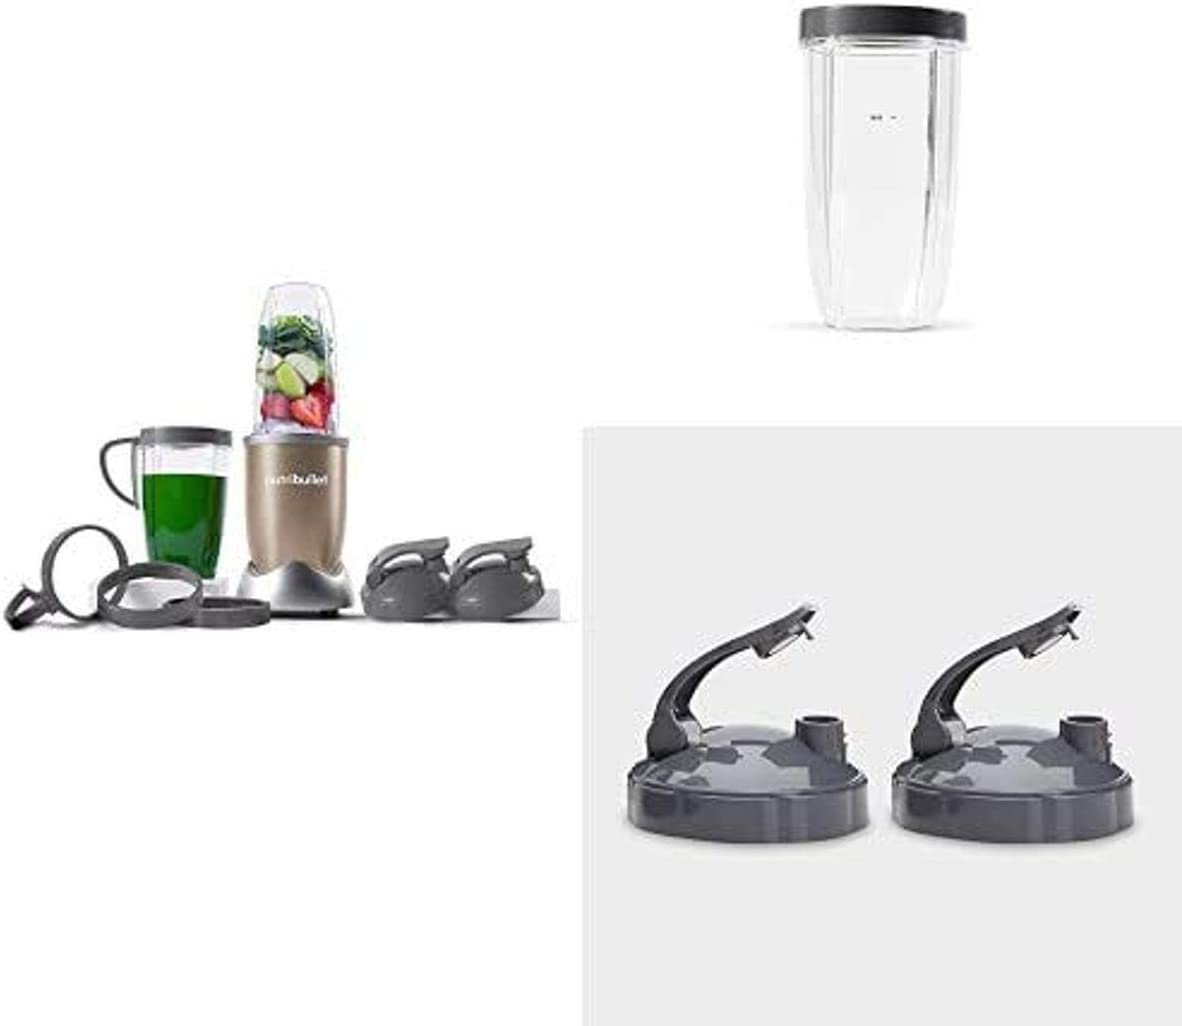 NutriBullet Pro Nutrient Extractor with 32oz Cup and Set of 2 To Go Lids